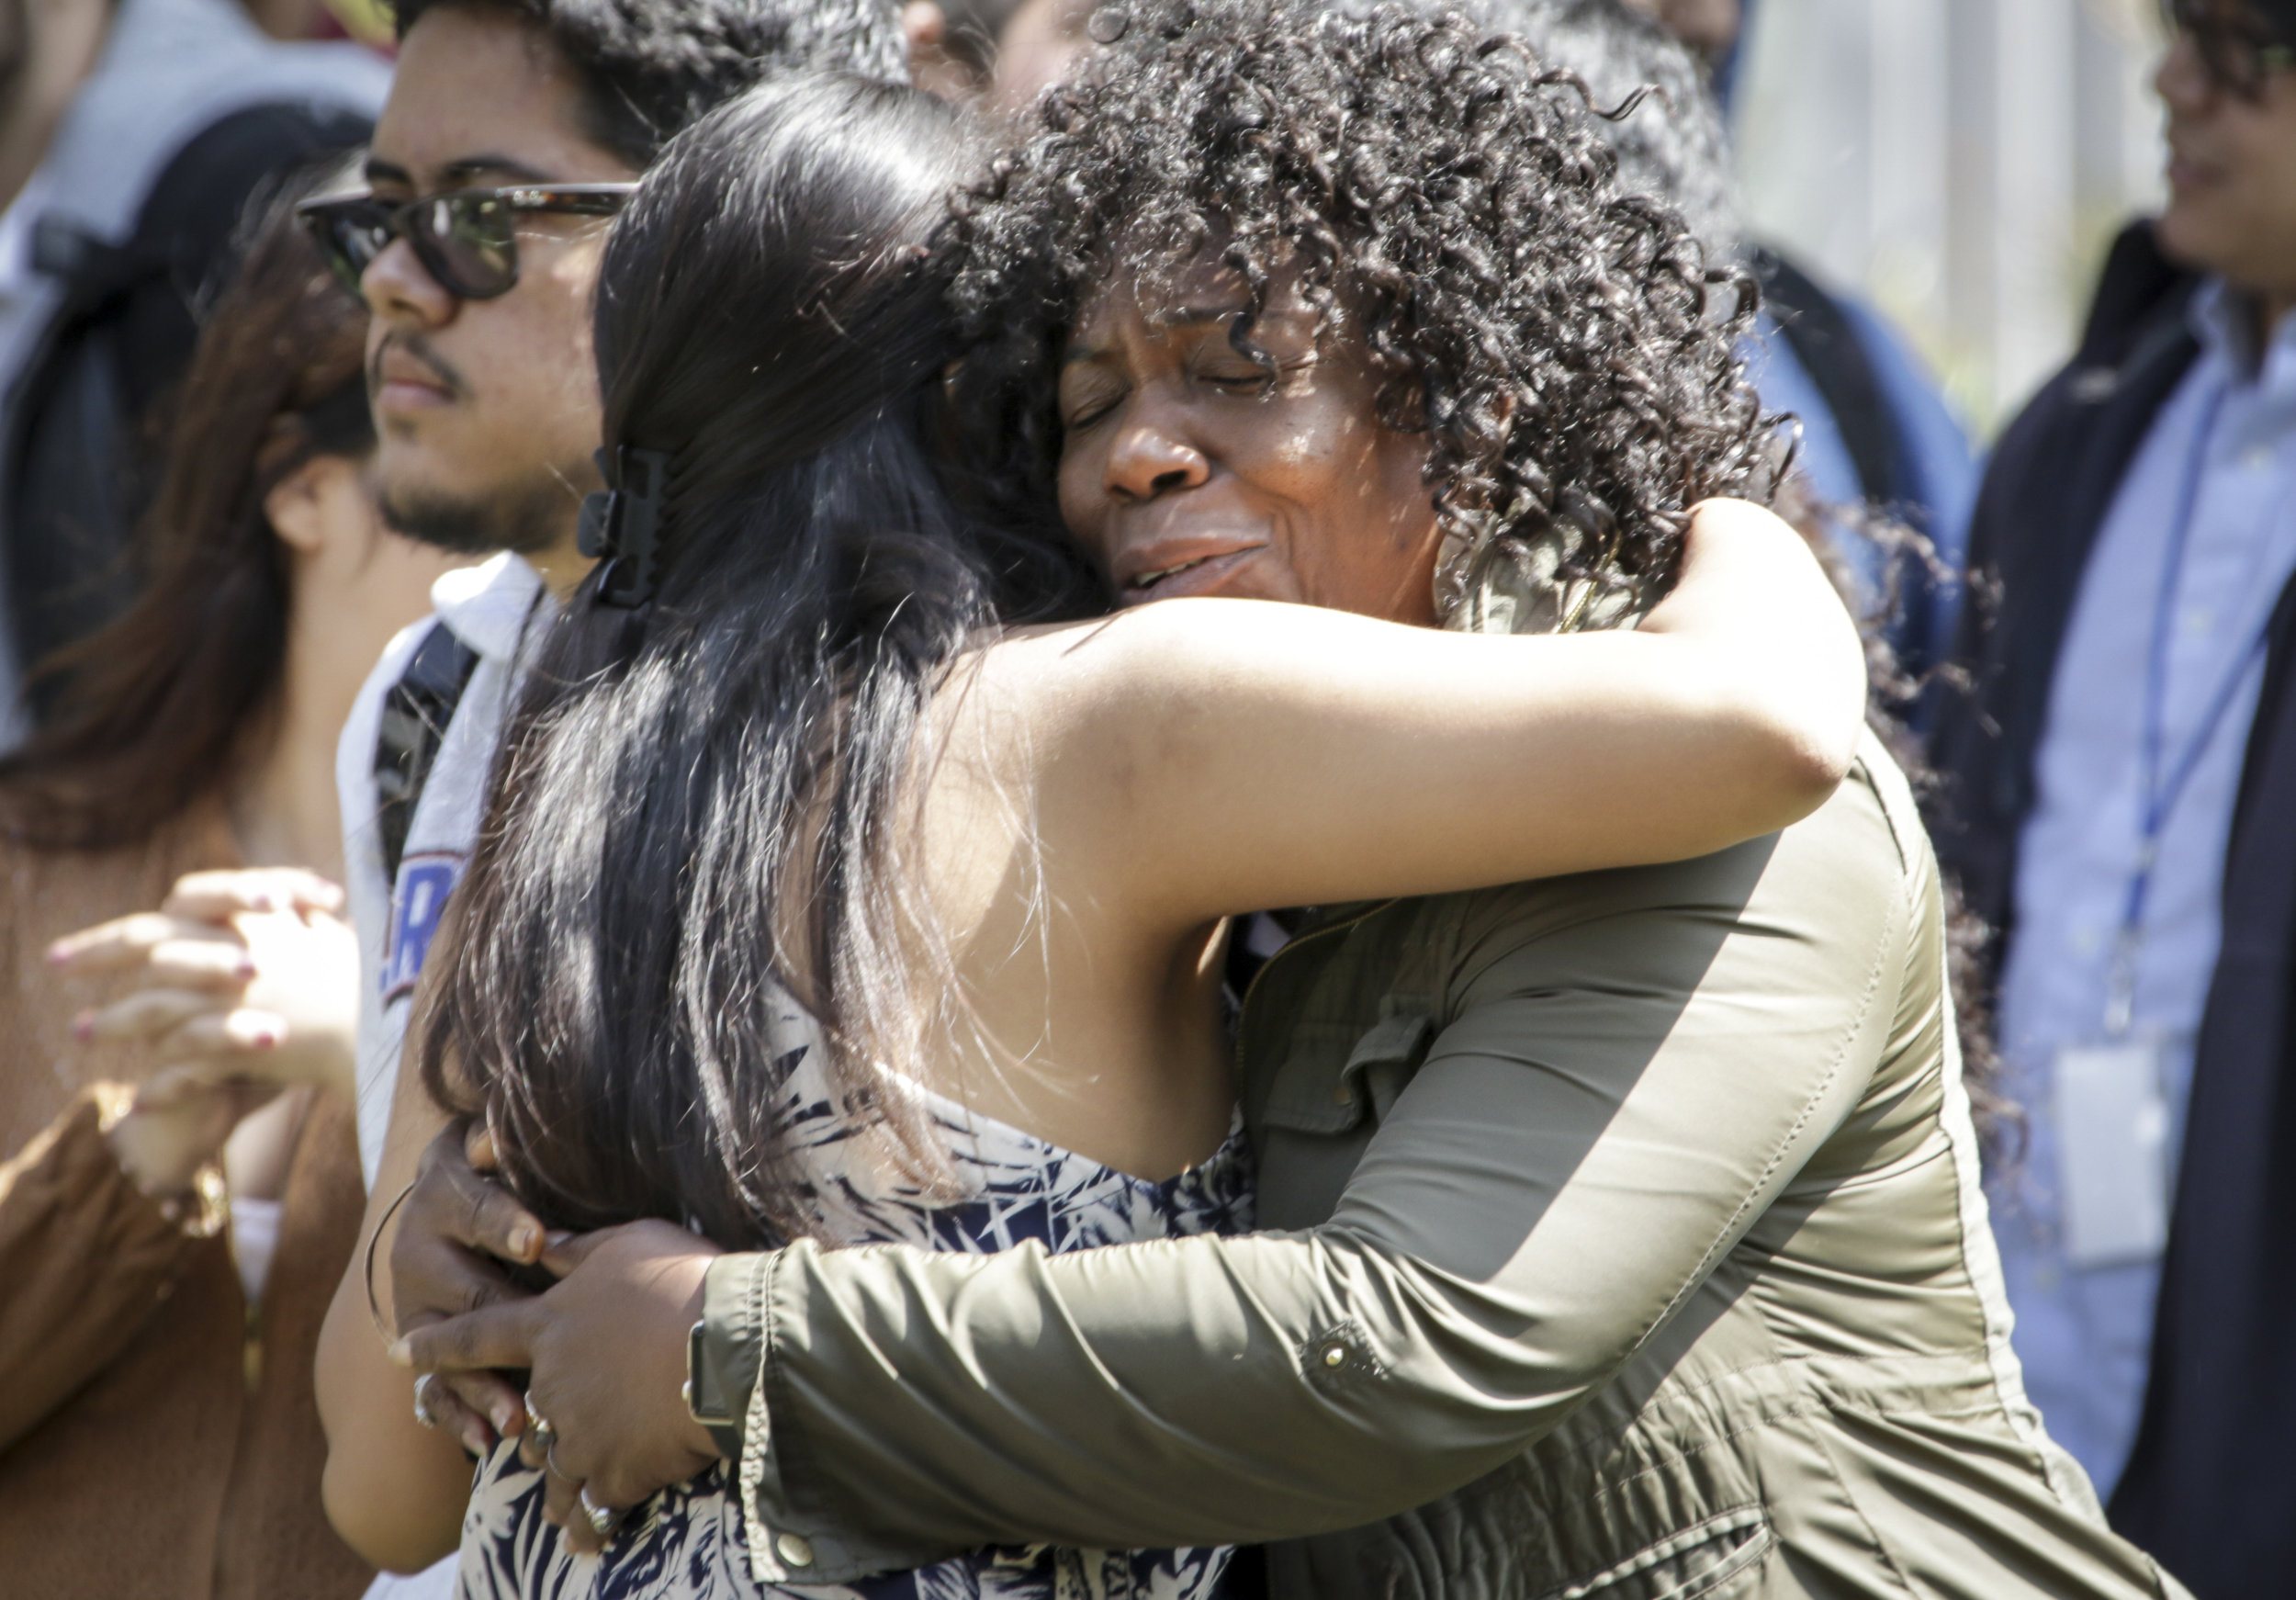 Santa Monica College student Hyacinth Mcleod (Right) hugs A.S. candidate Kimberly Hernandez (Left) while she attends the Associated Students elections debate held at the quad of the main campus on Tuesday, April 3, 2018. Kimberly is running for Director of Student Assistance (Ashutosh Bikram Singh/Corsair Photo)